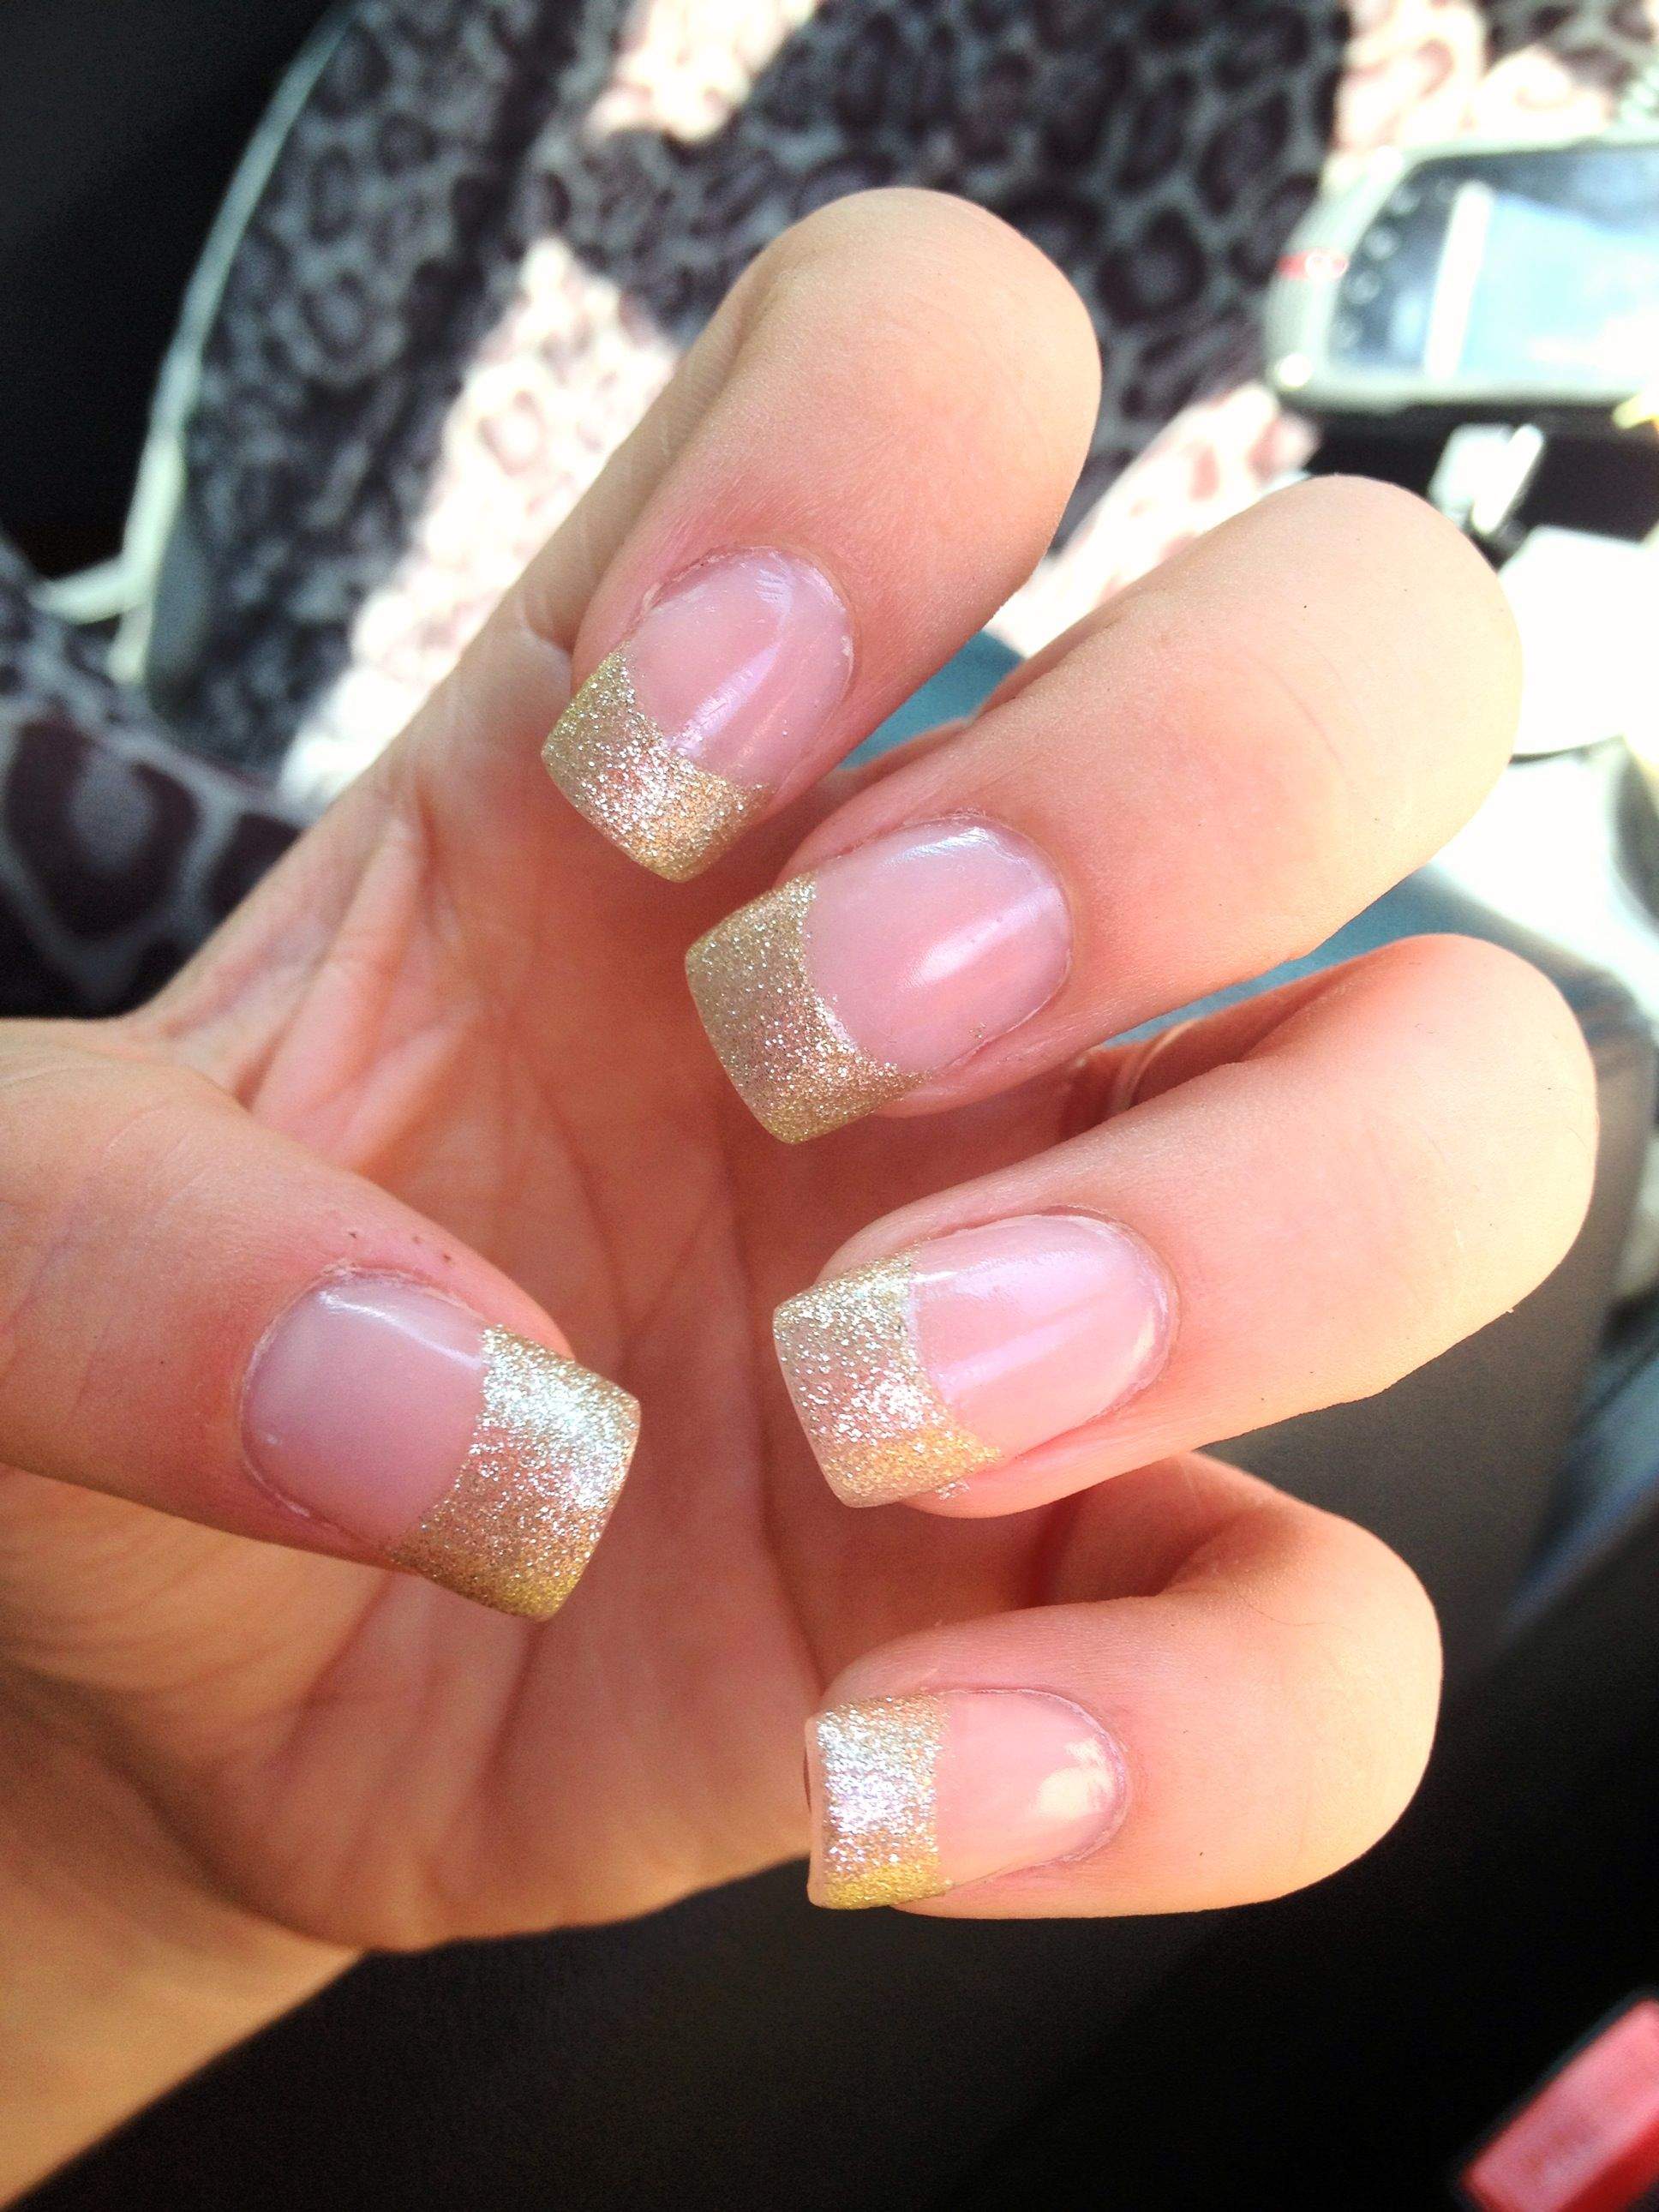 light gold glitter nail tip design. Acrylic nail tip design. I love ...